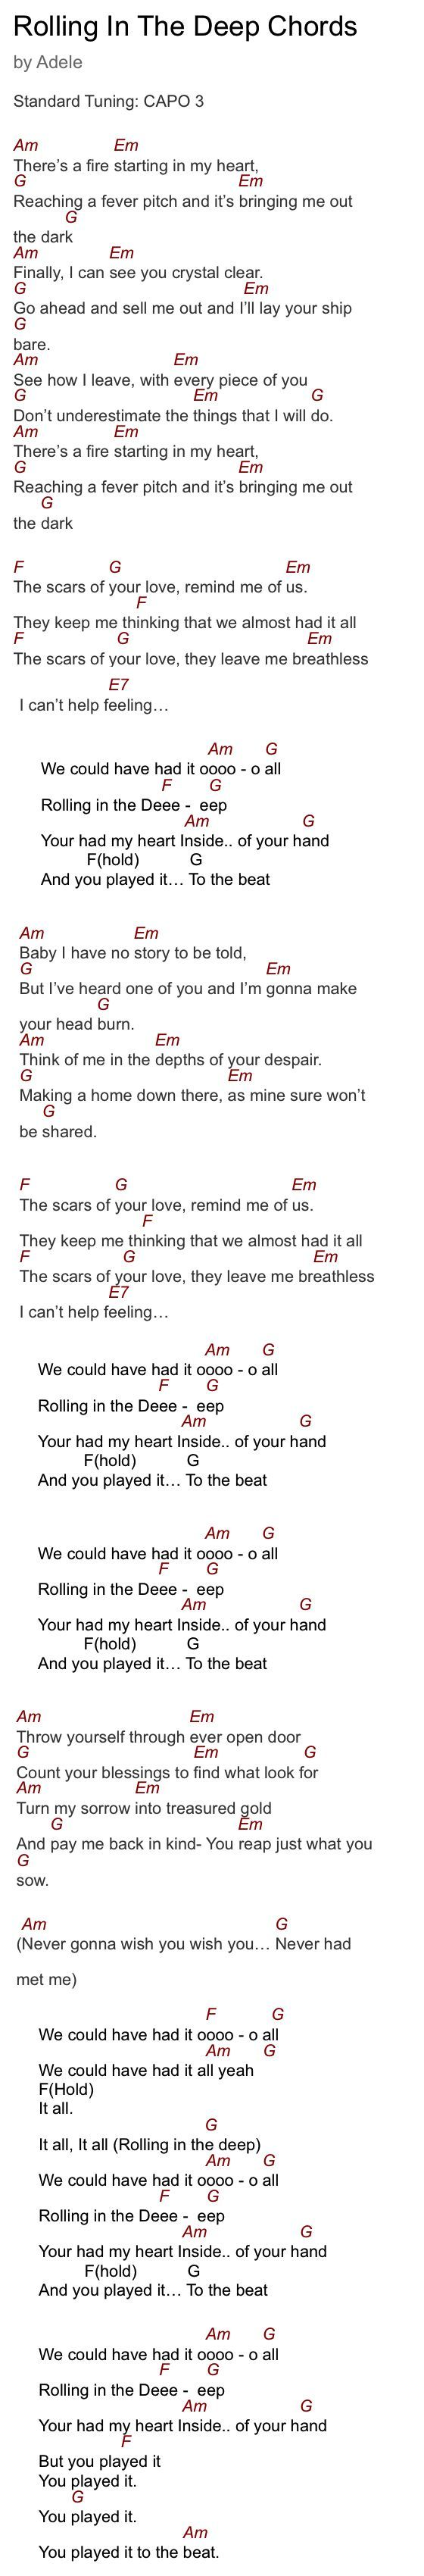 Adele's- Rolling in the Deep Guitar Chords CAPO 3                                                                                                                                                                                 More